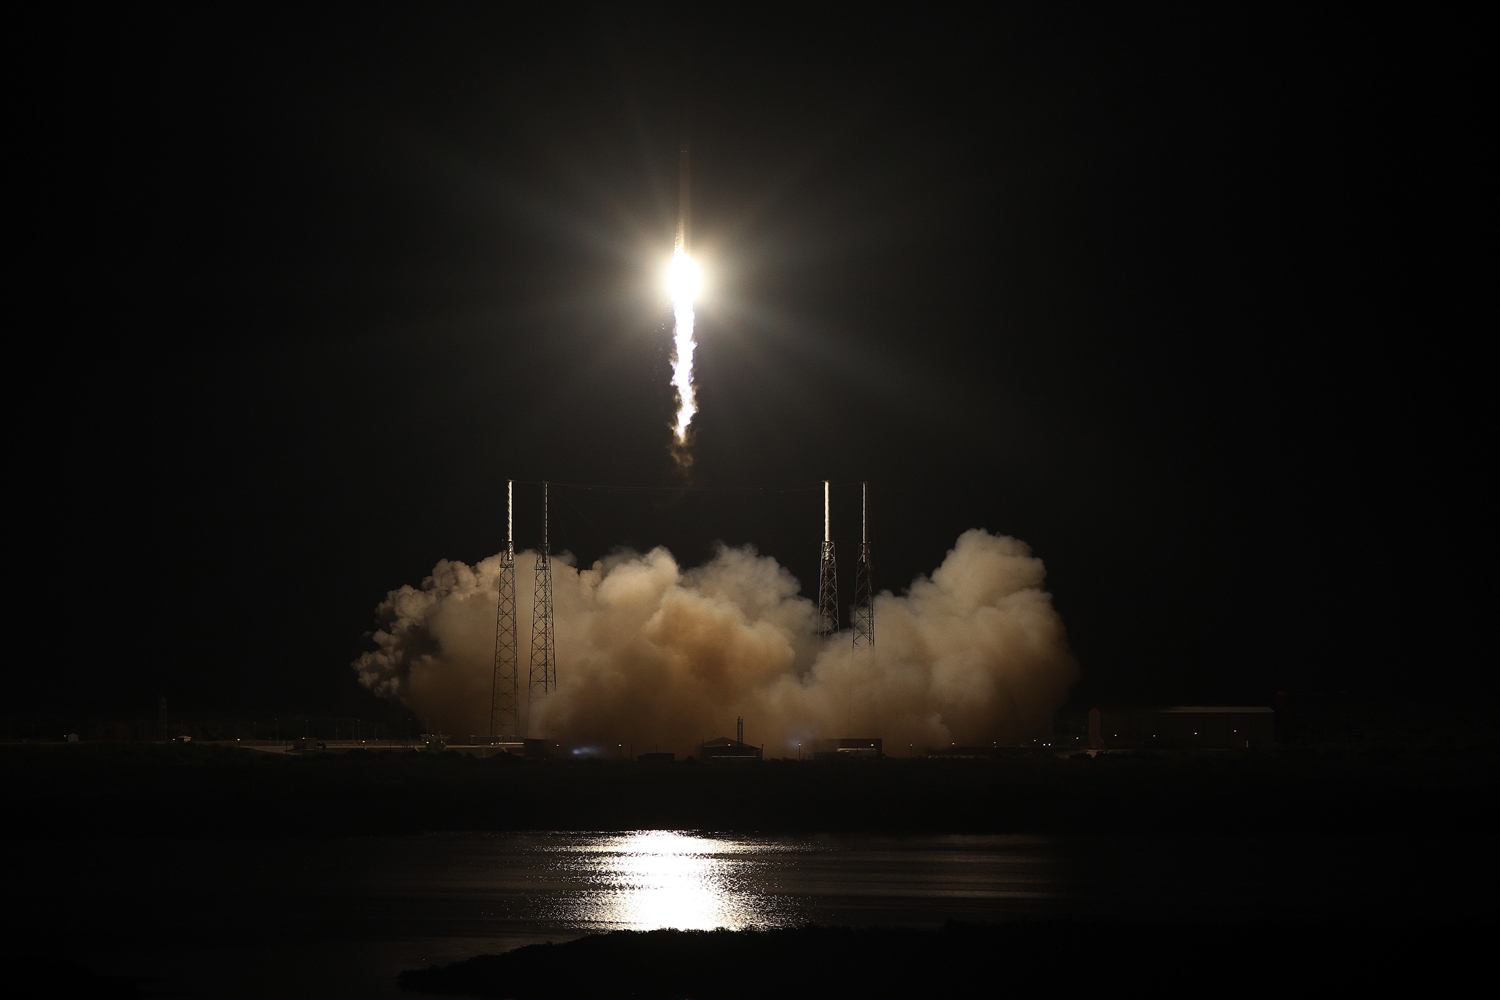 A Falcon 9 rocket carrying the Dragon spacecraft blasts off from Complex 40 at Cape Canaveral, on May 22, 2012.